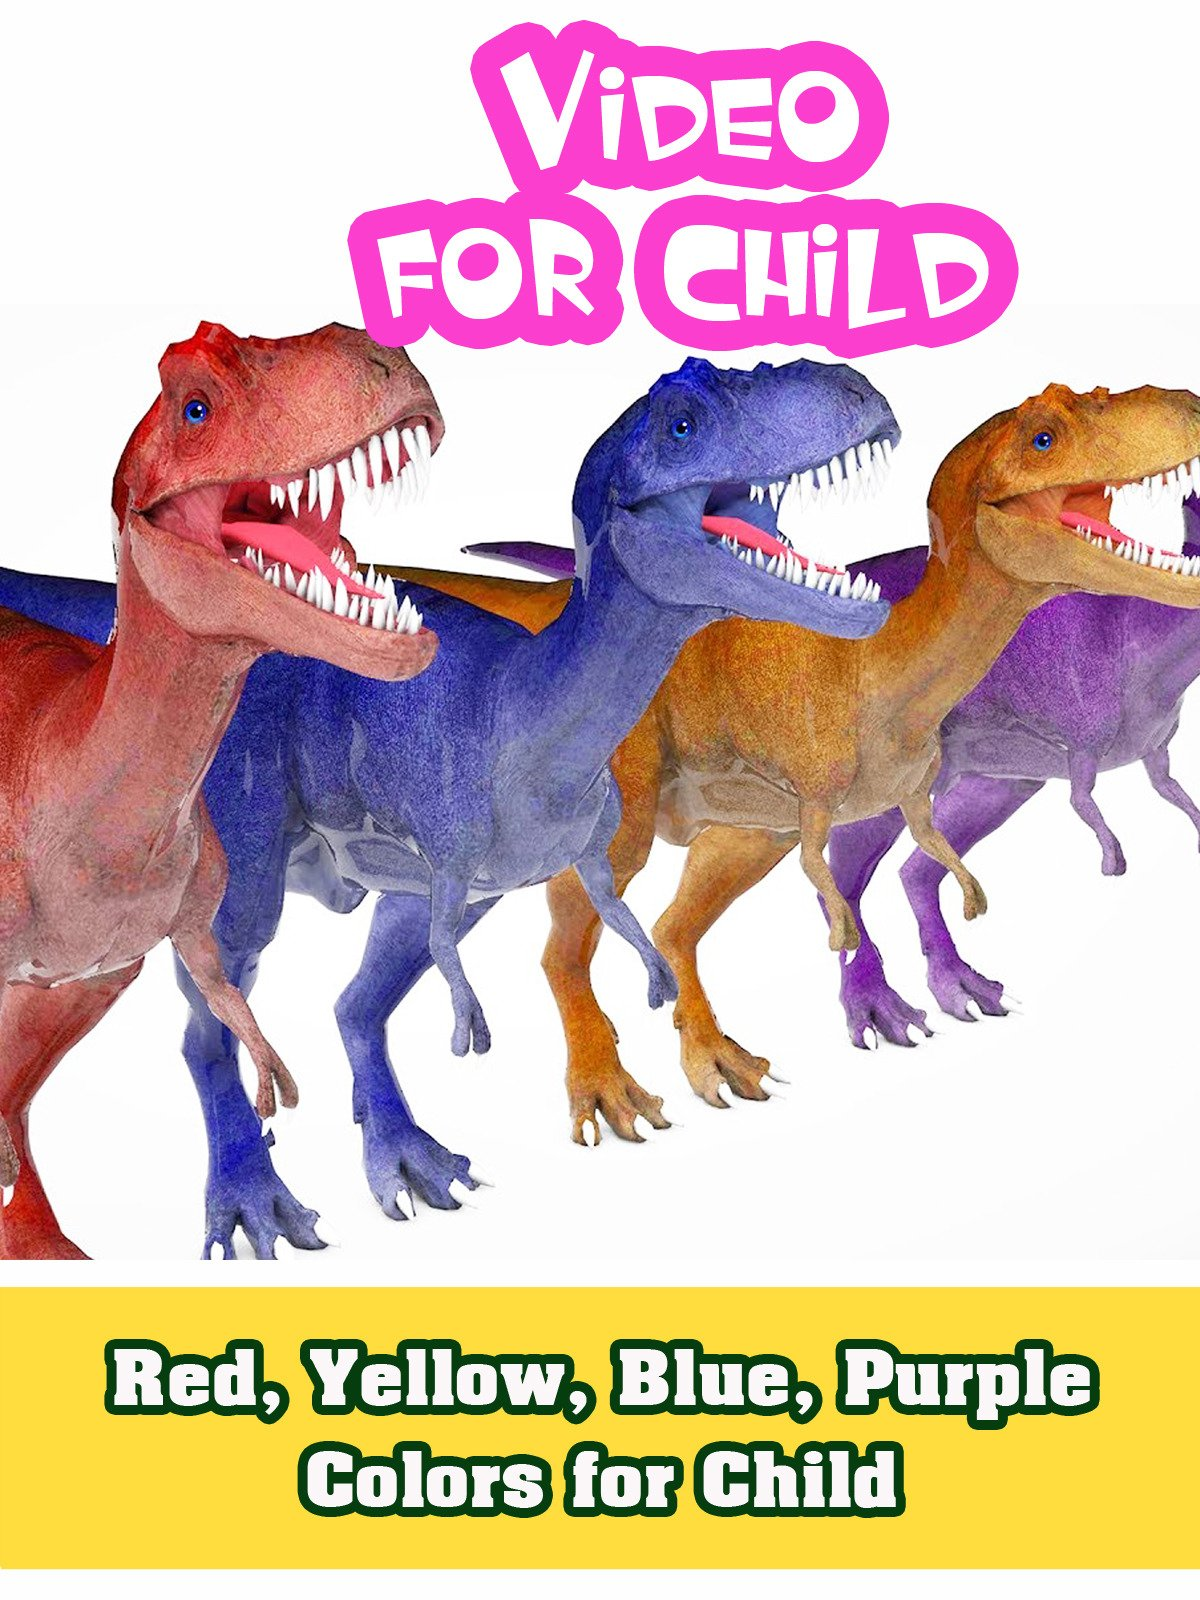 Red, Yellow, Blue, Purple Colors for Child